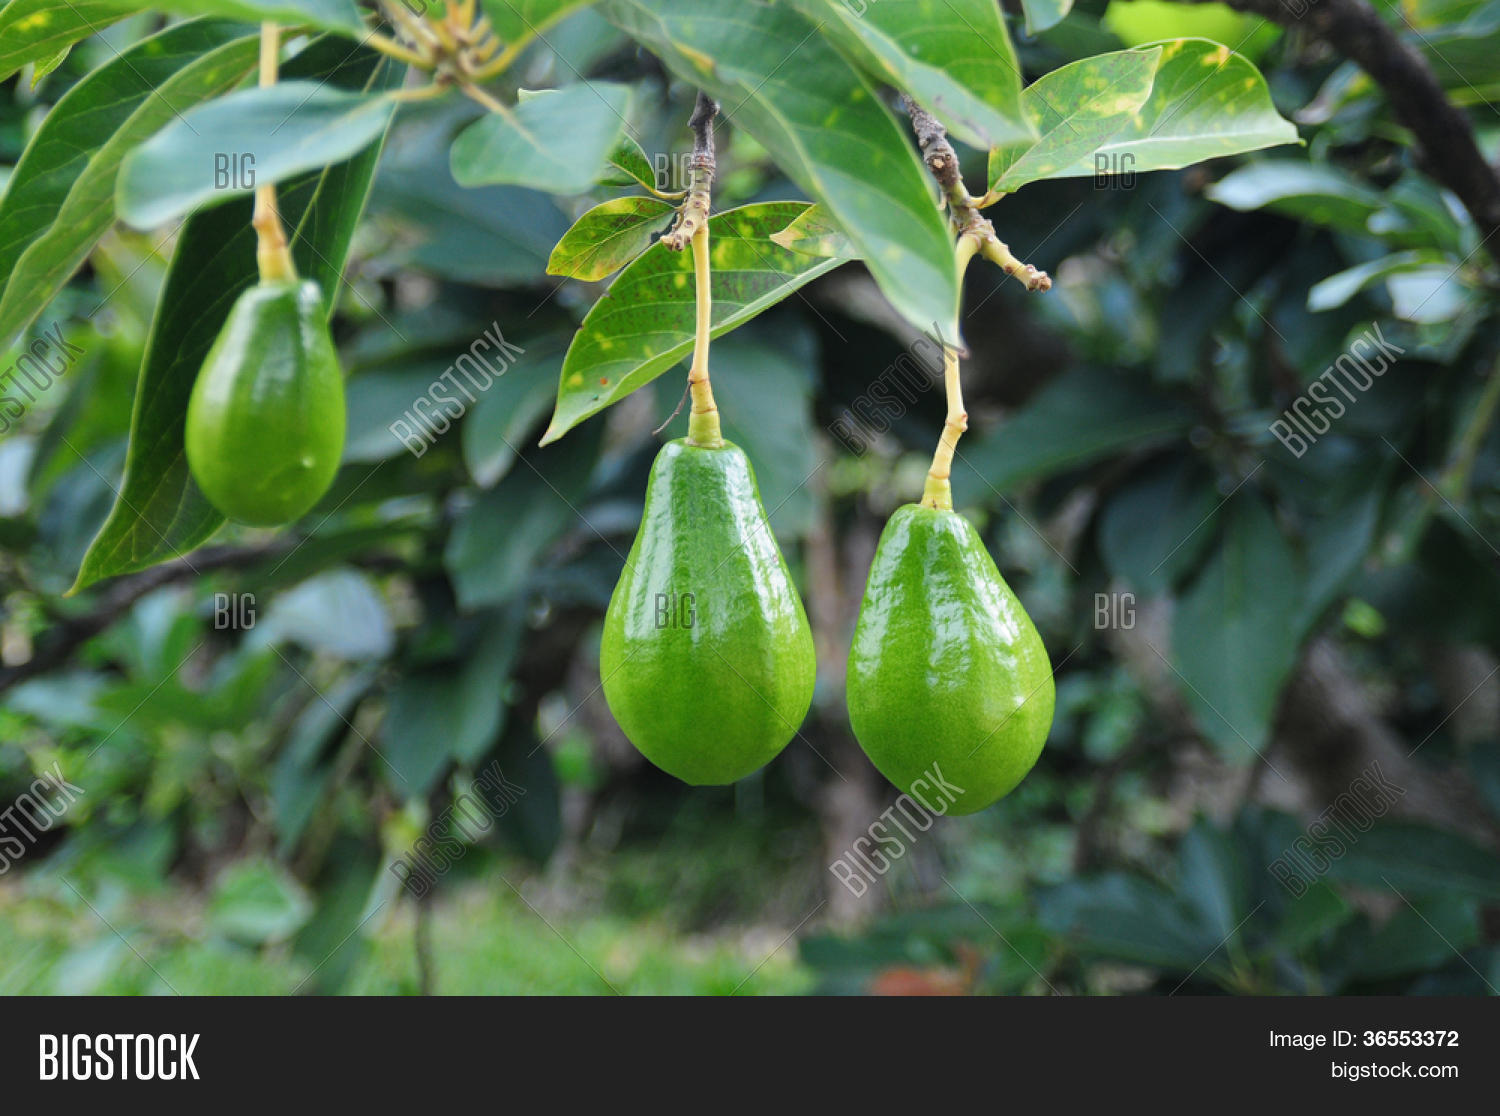 Avocado Boom Avocado Tree Image Photo Free Trial Bigstock